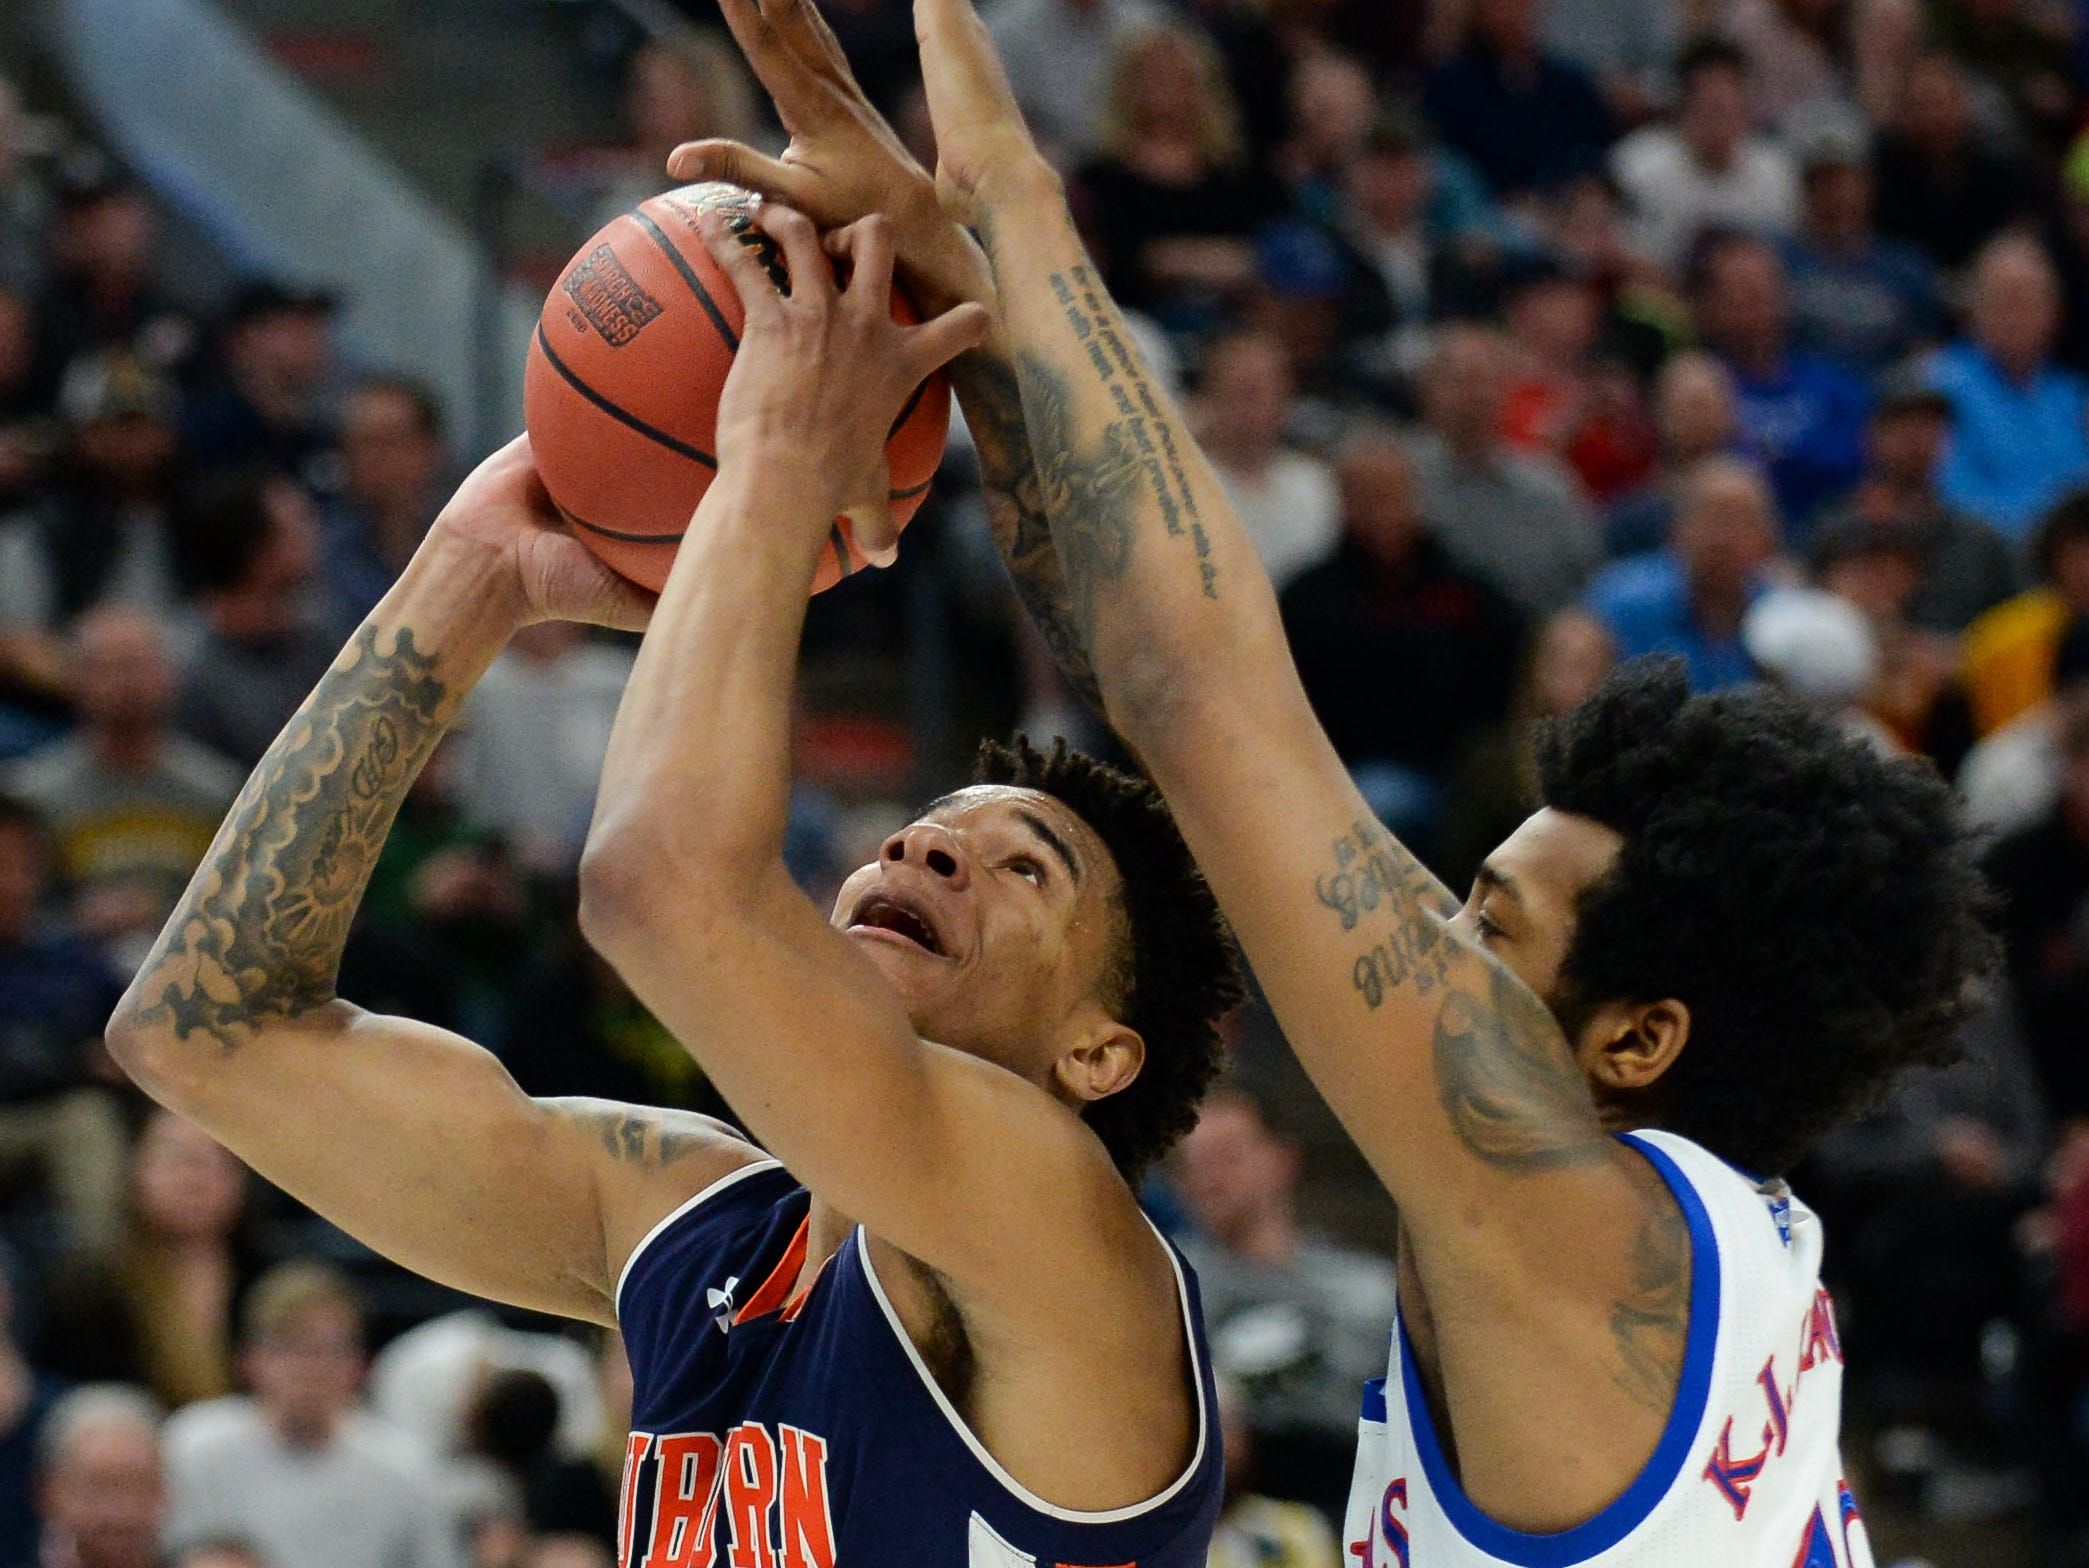 Mar 23, 2019; Salt Lake City, UT, USA; Auburn Tigers forward Chuma Okeke (5) looks to shoot as Kansas Jayhawks guard K.J. Lawson (13) defends during the first half in the second round of the 2019 NCAA Tournament at Vivint Smart Home Arena. Mandatory Credit: Gary A. Vasquez-USA TODAY Sports